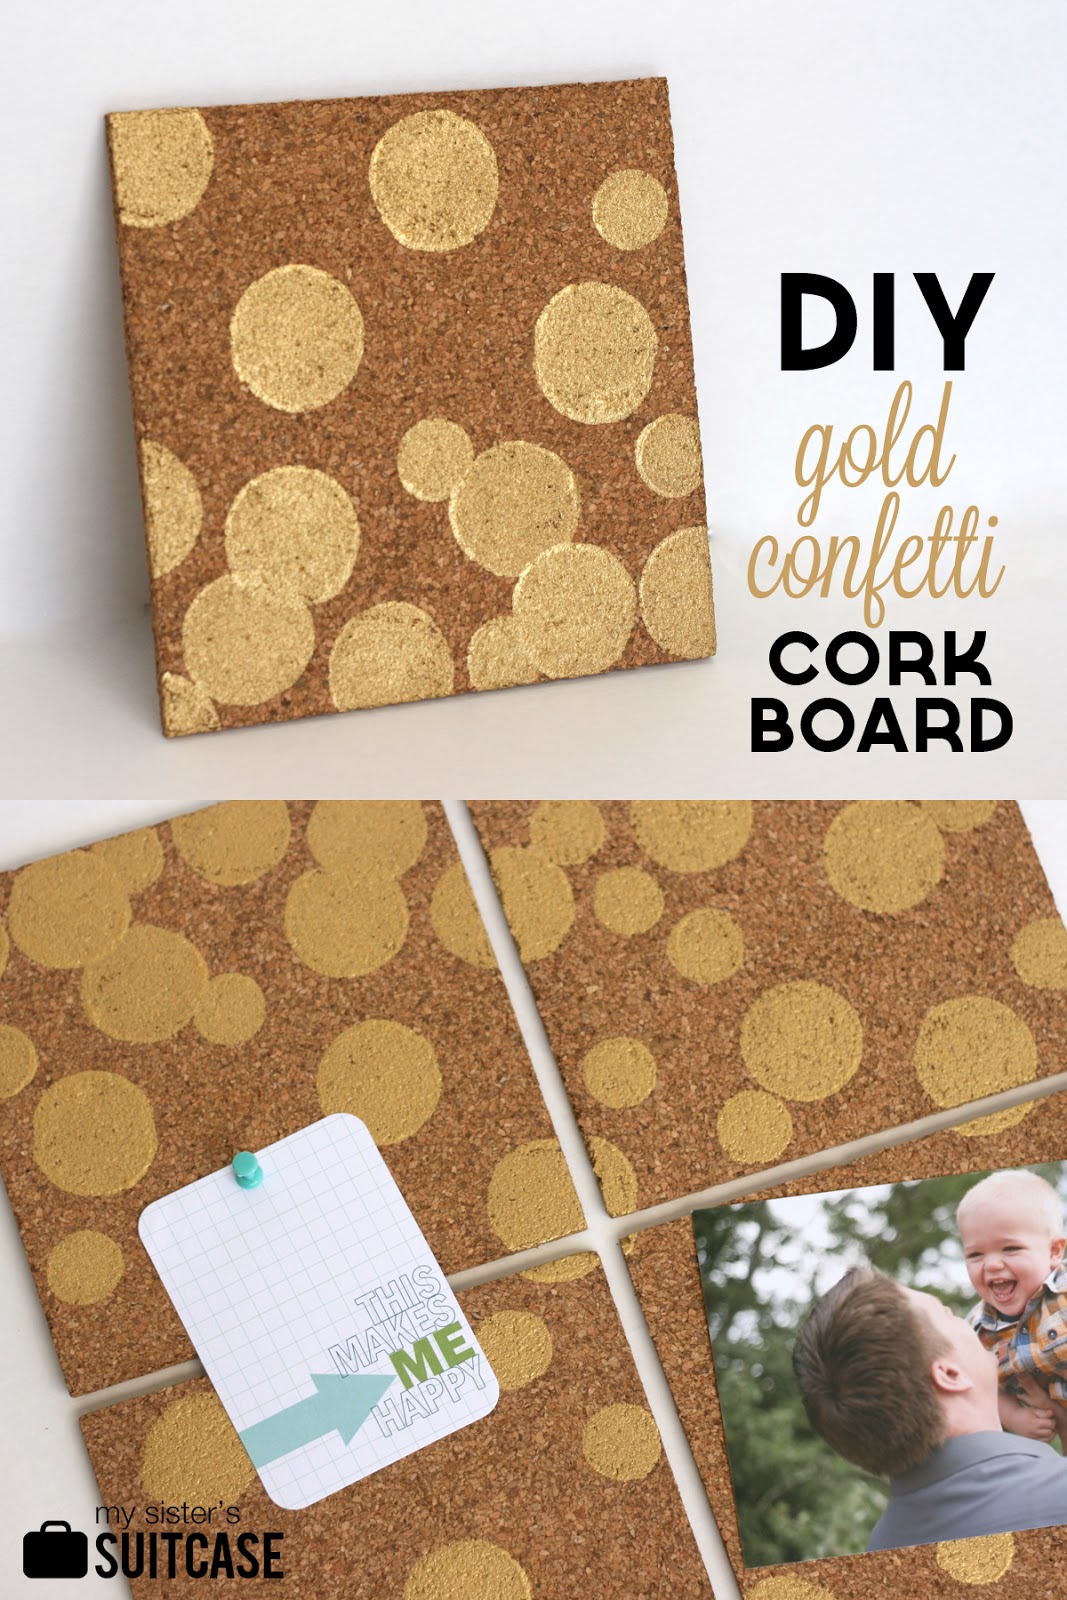 Scintillating cork board diy photos best inspiration for Diy cork board